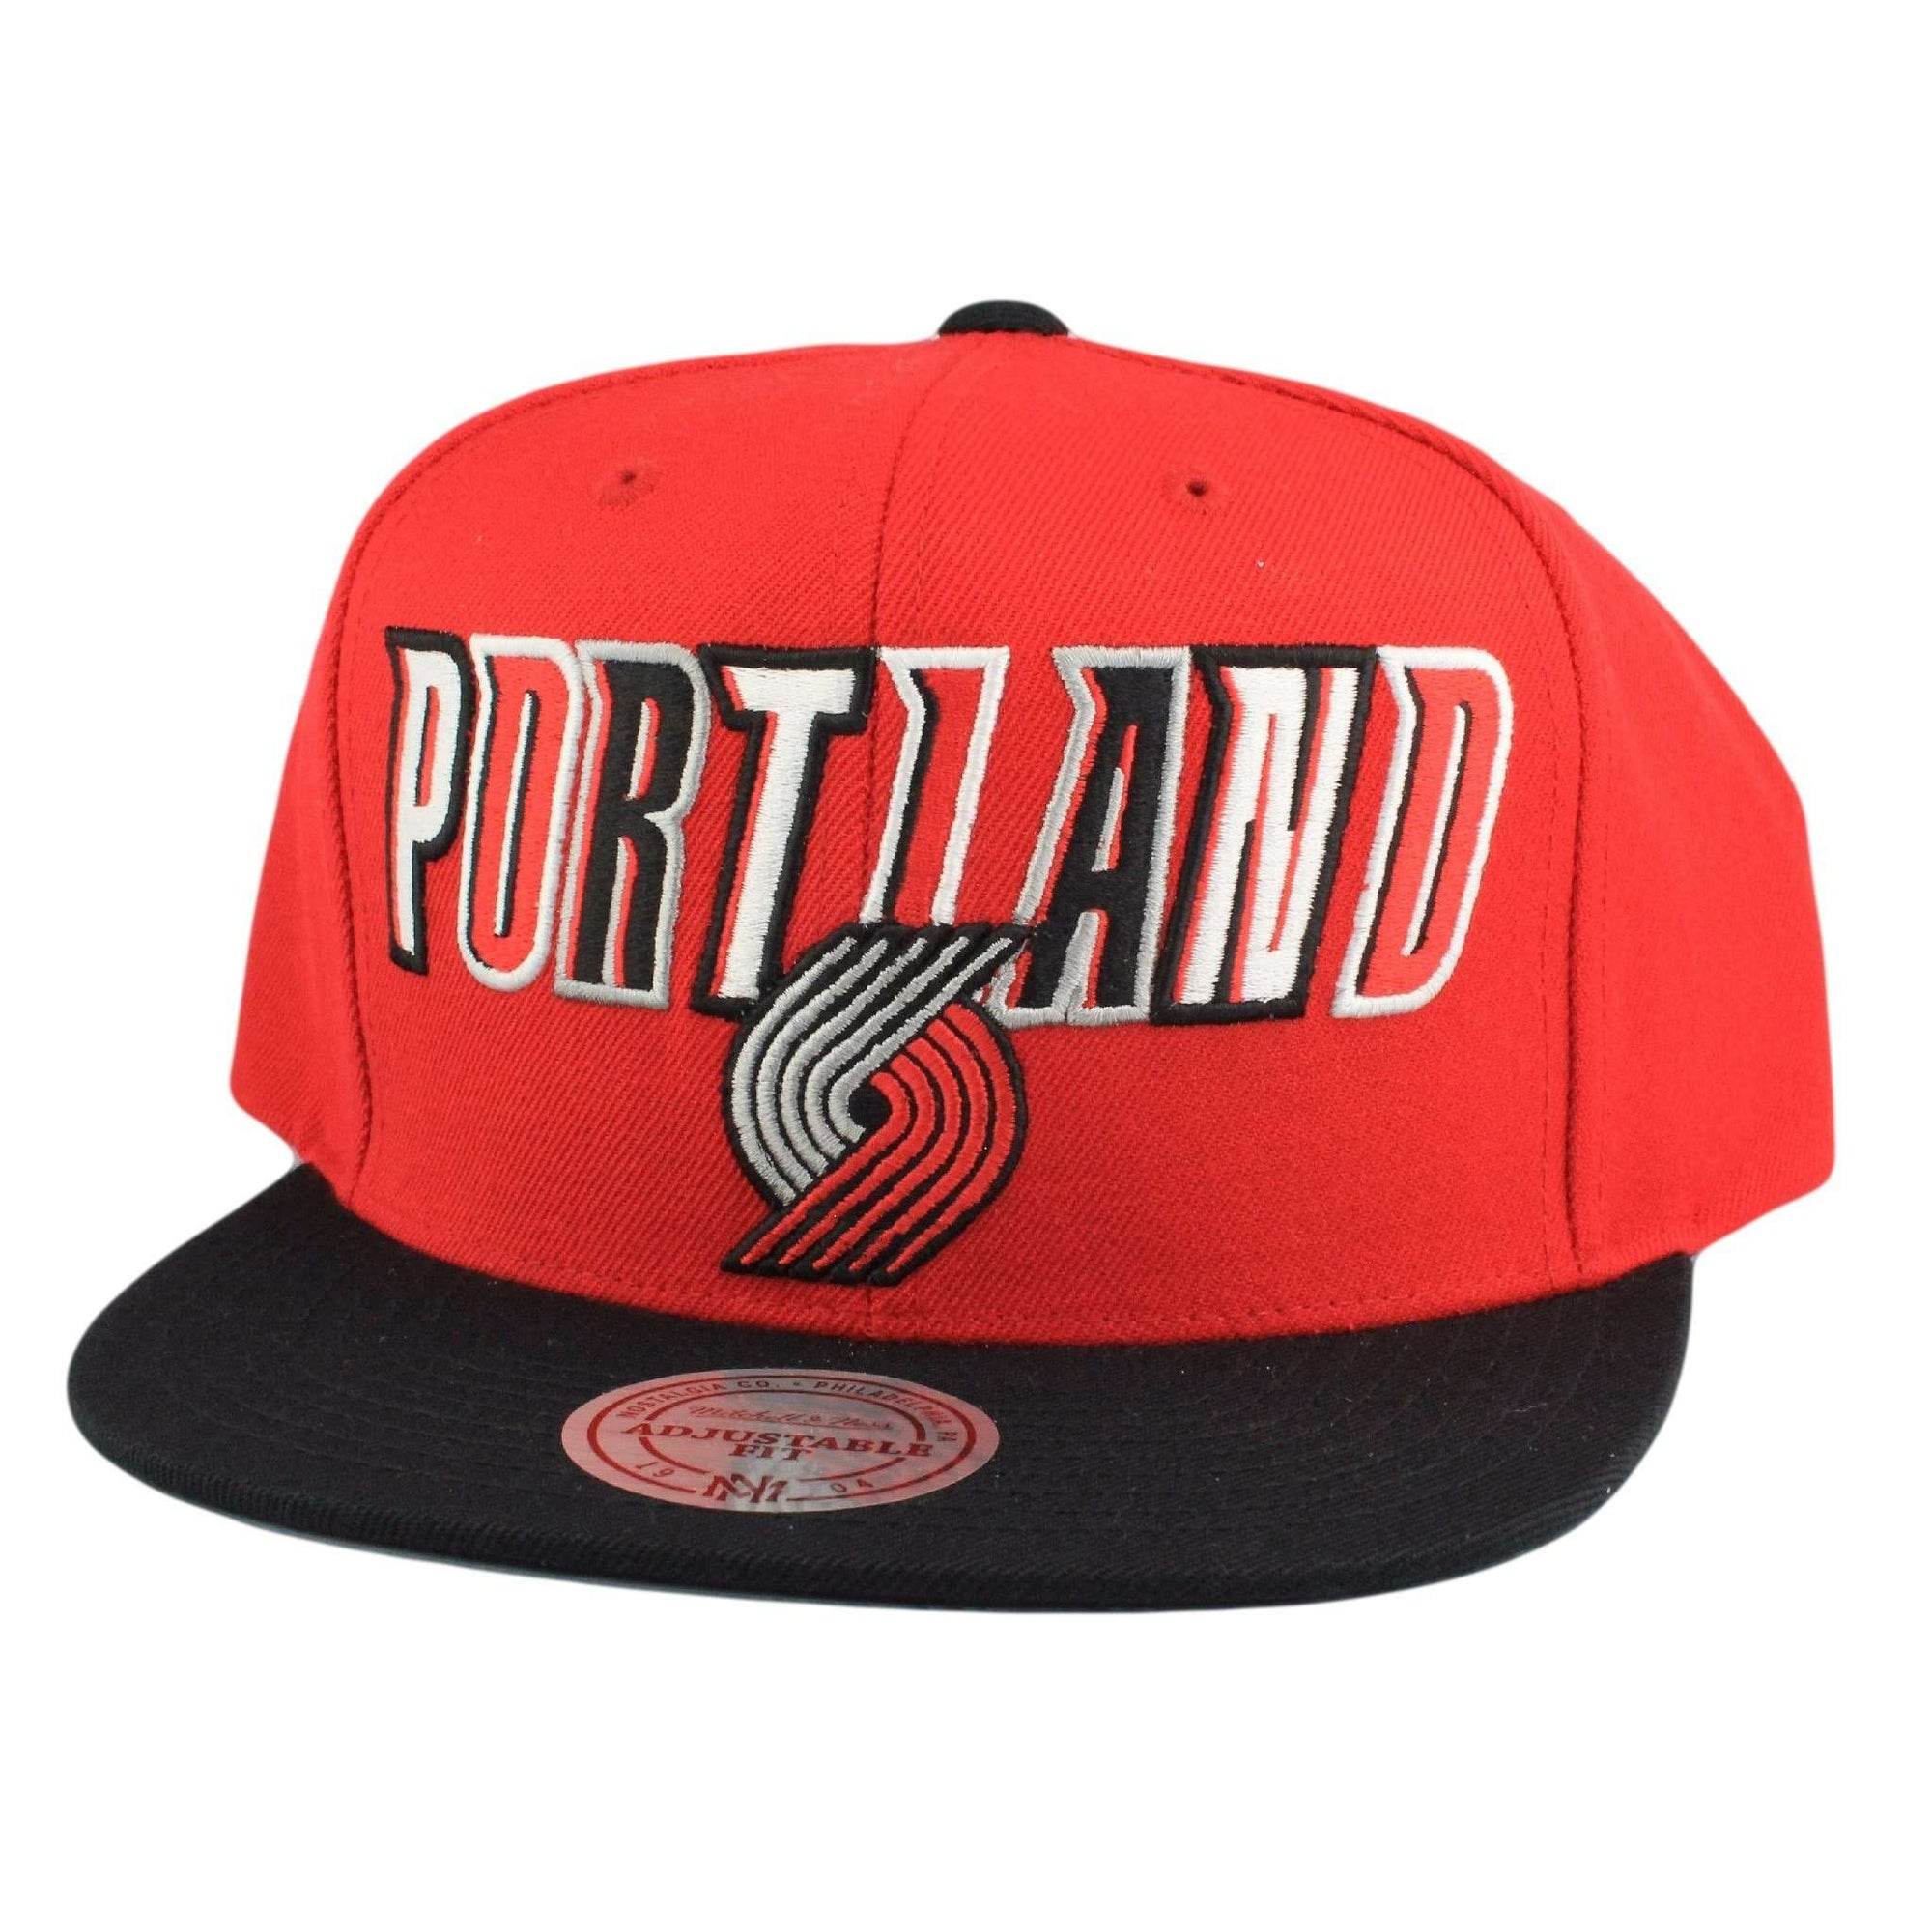 sale retailer 45bc6 4e32b Mitchell and Ness Portland Trail Blazers Tri Pop Wordmark Red Black Snapback